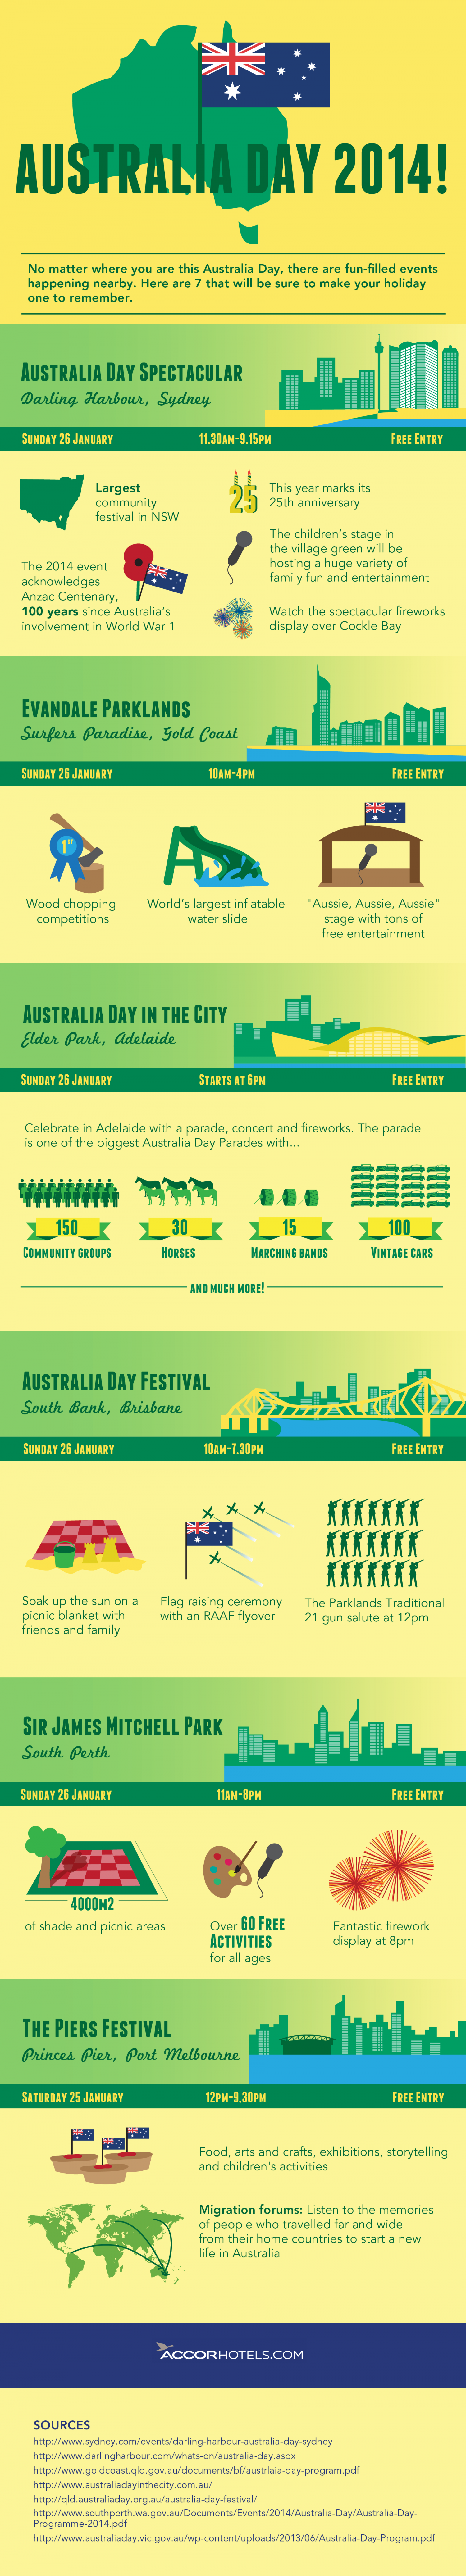 Australia Day 2014 Activities Infographic